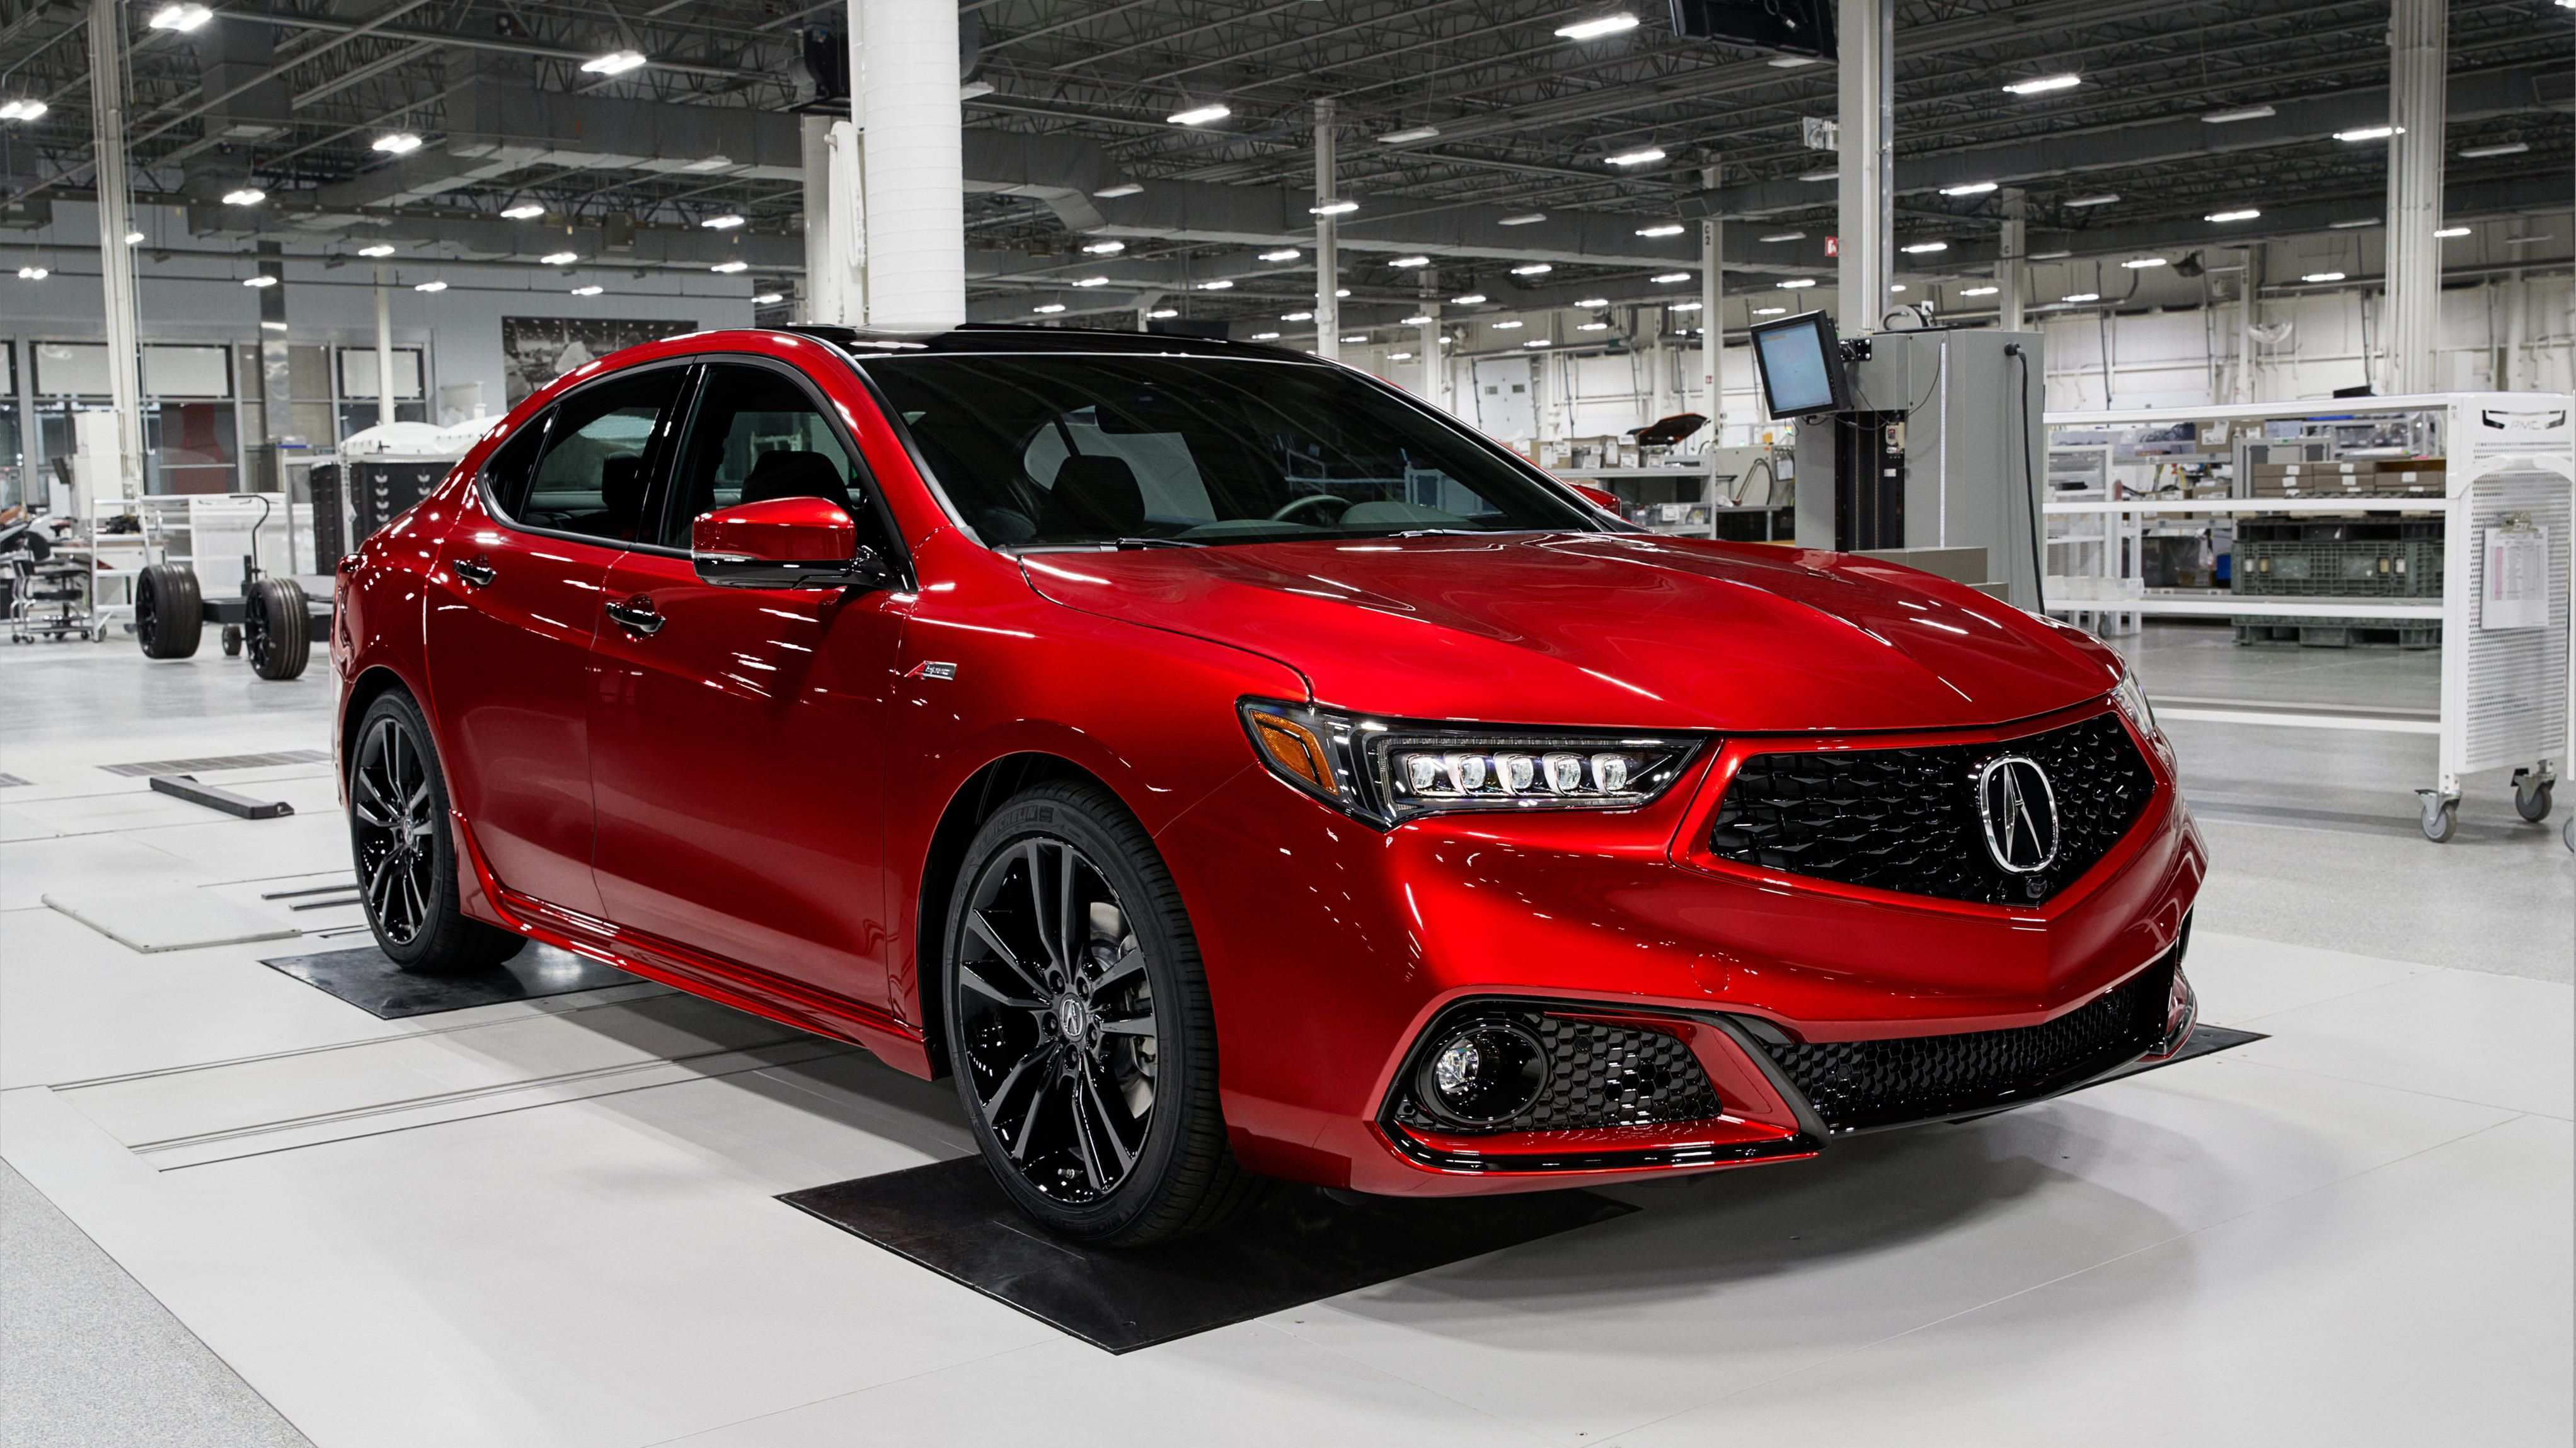 70 The 2020 Acura Tlx Type S Price History